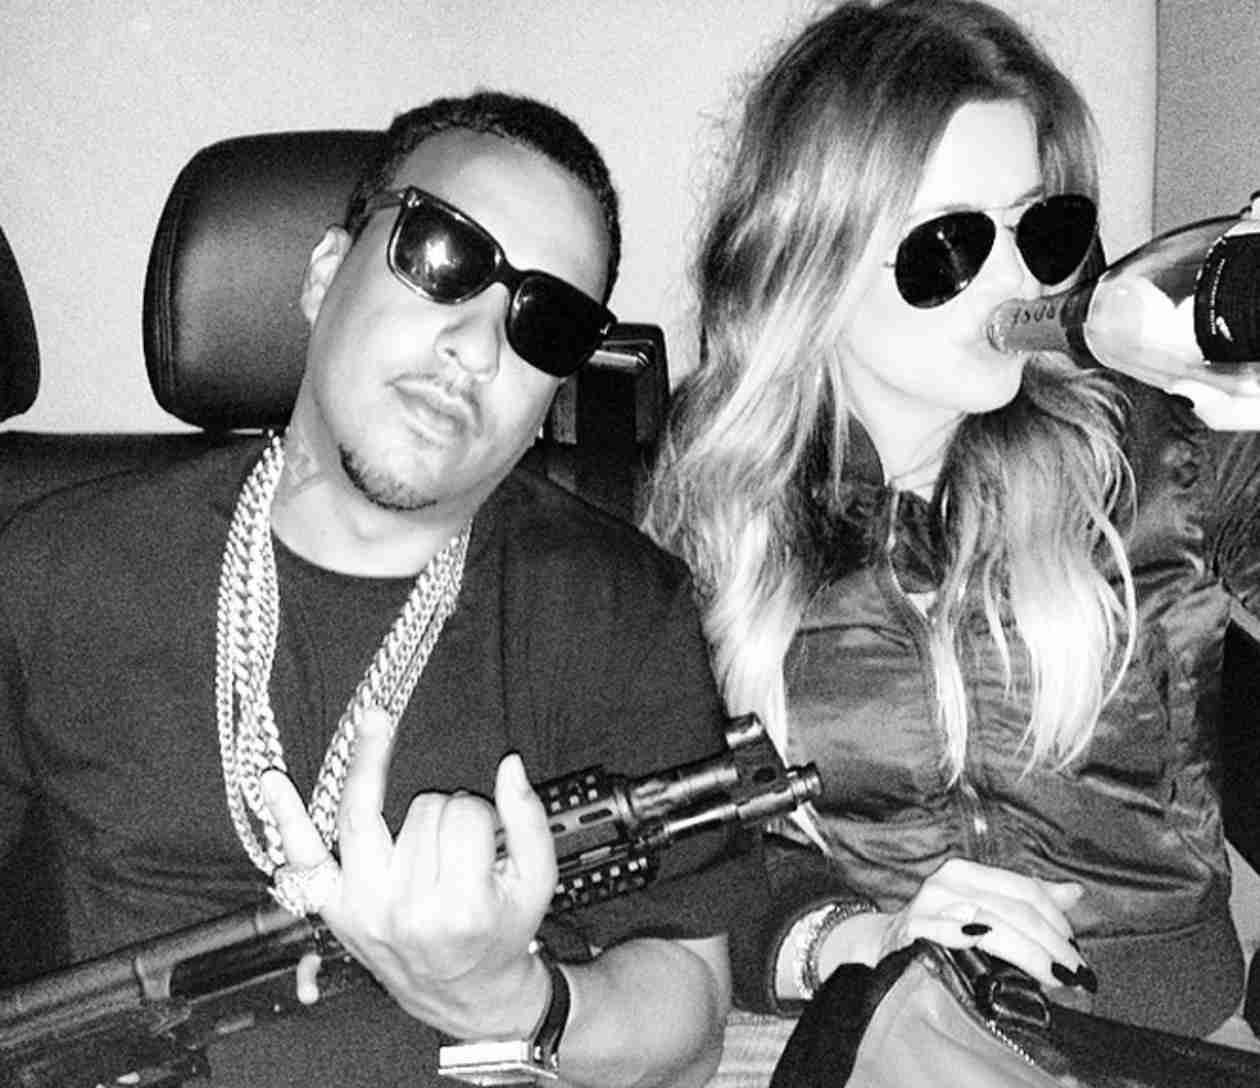 Khloe Kardashian Gets Diamond Ring From French Montana For Her Birthday